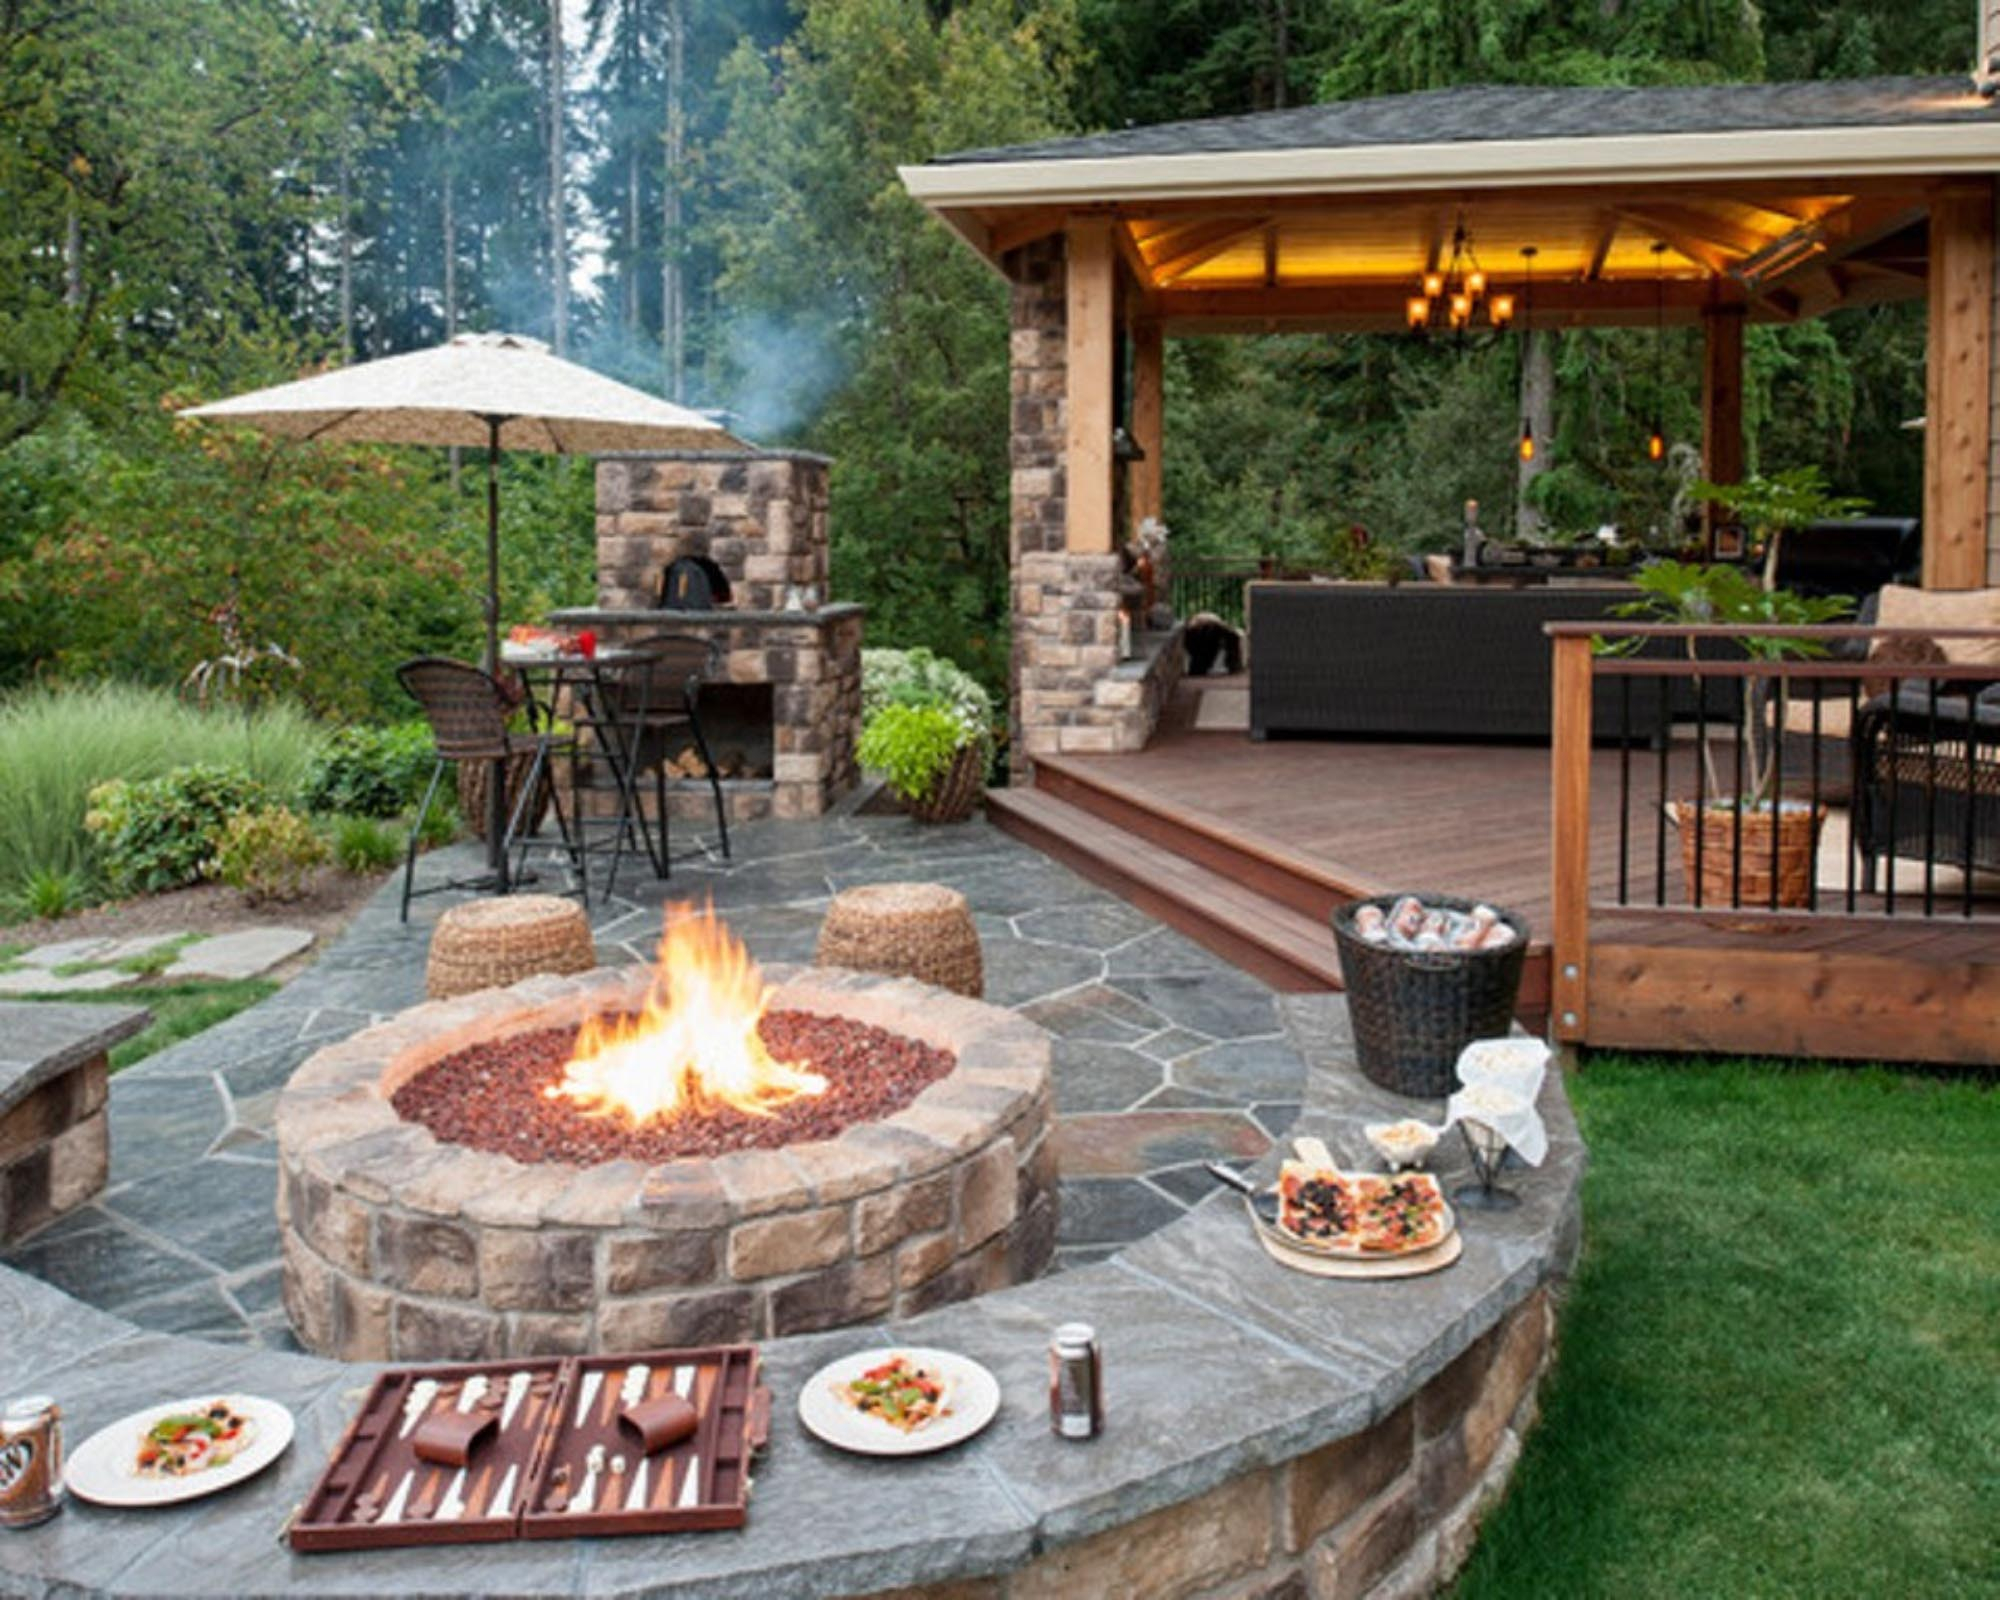 Outdoor Patio Ideas With Fire Pit Fire Pit Design Ideas inside Backyard Patio Ideas With Fire Pit